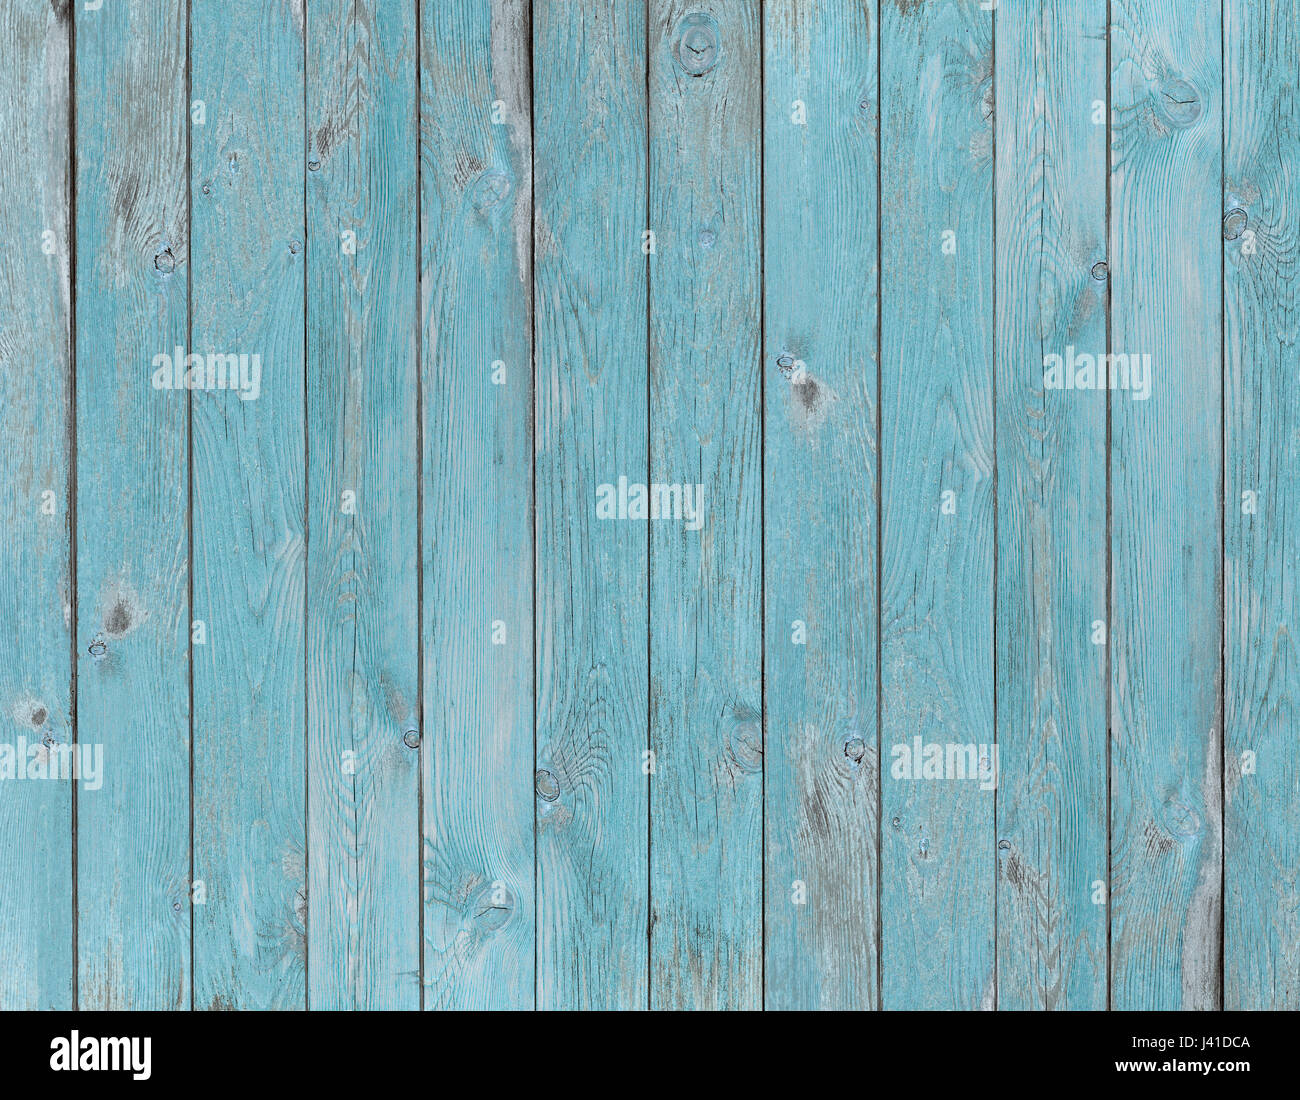 blue old wood planks texture or background - Stock Image